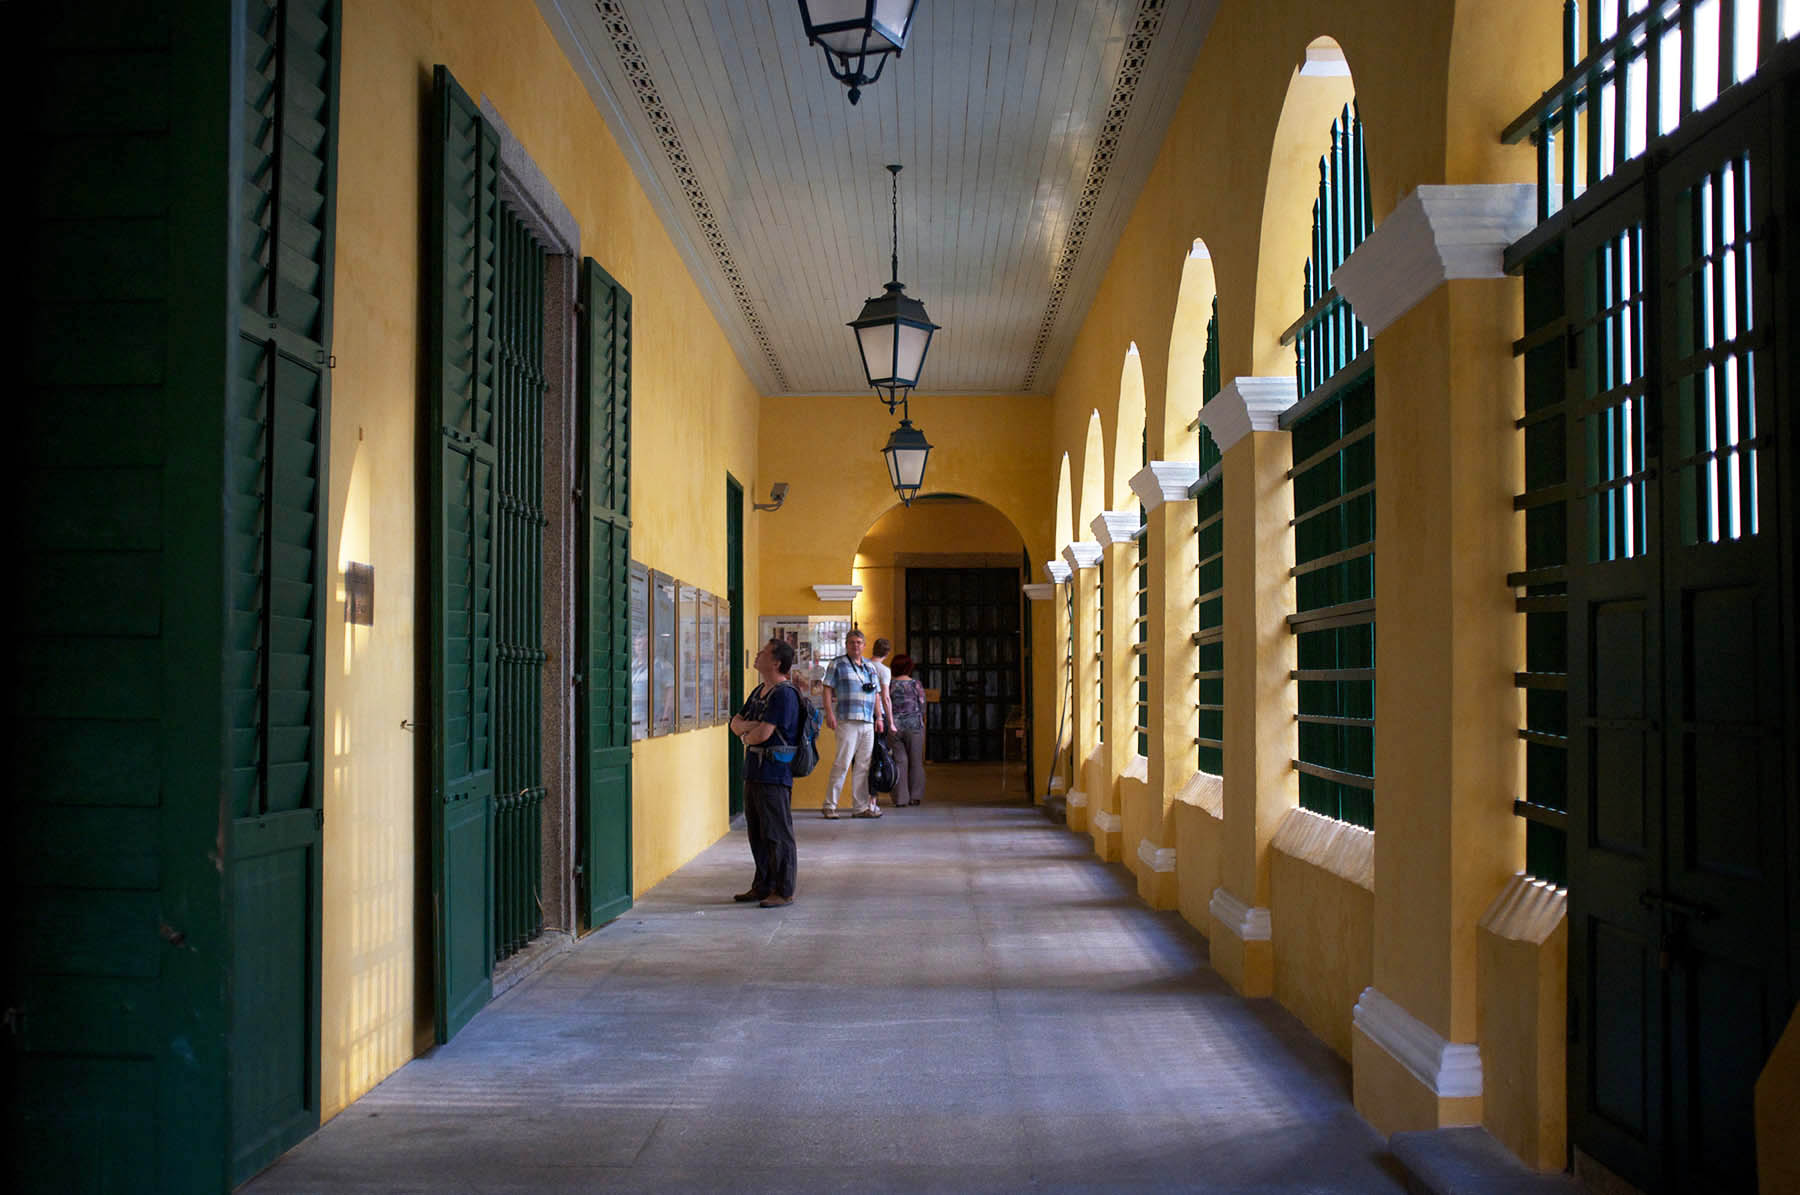 Corridor of St. Dominic's Church.